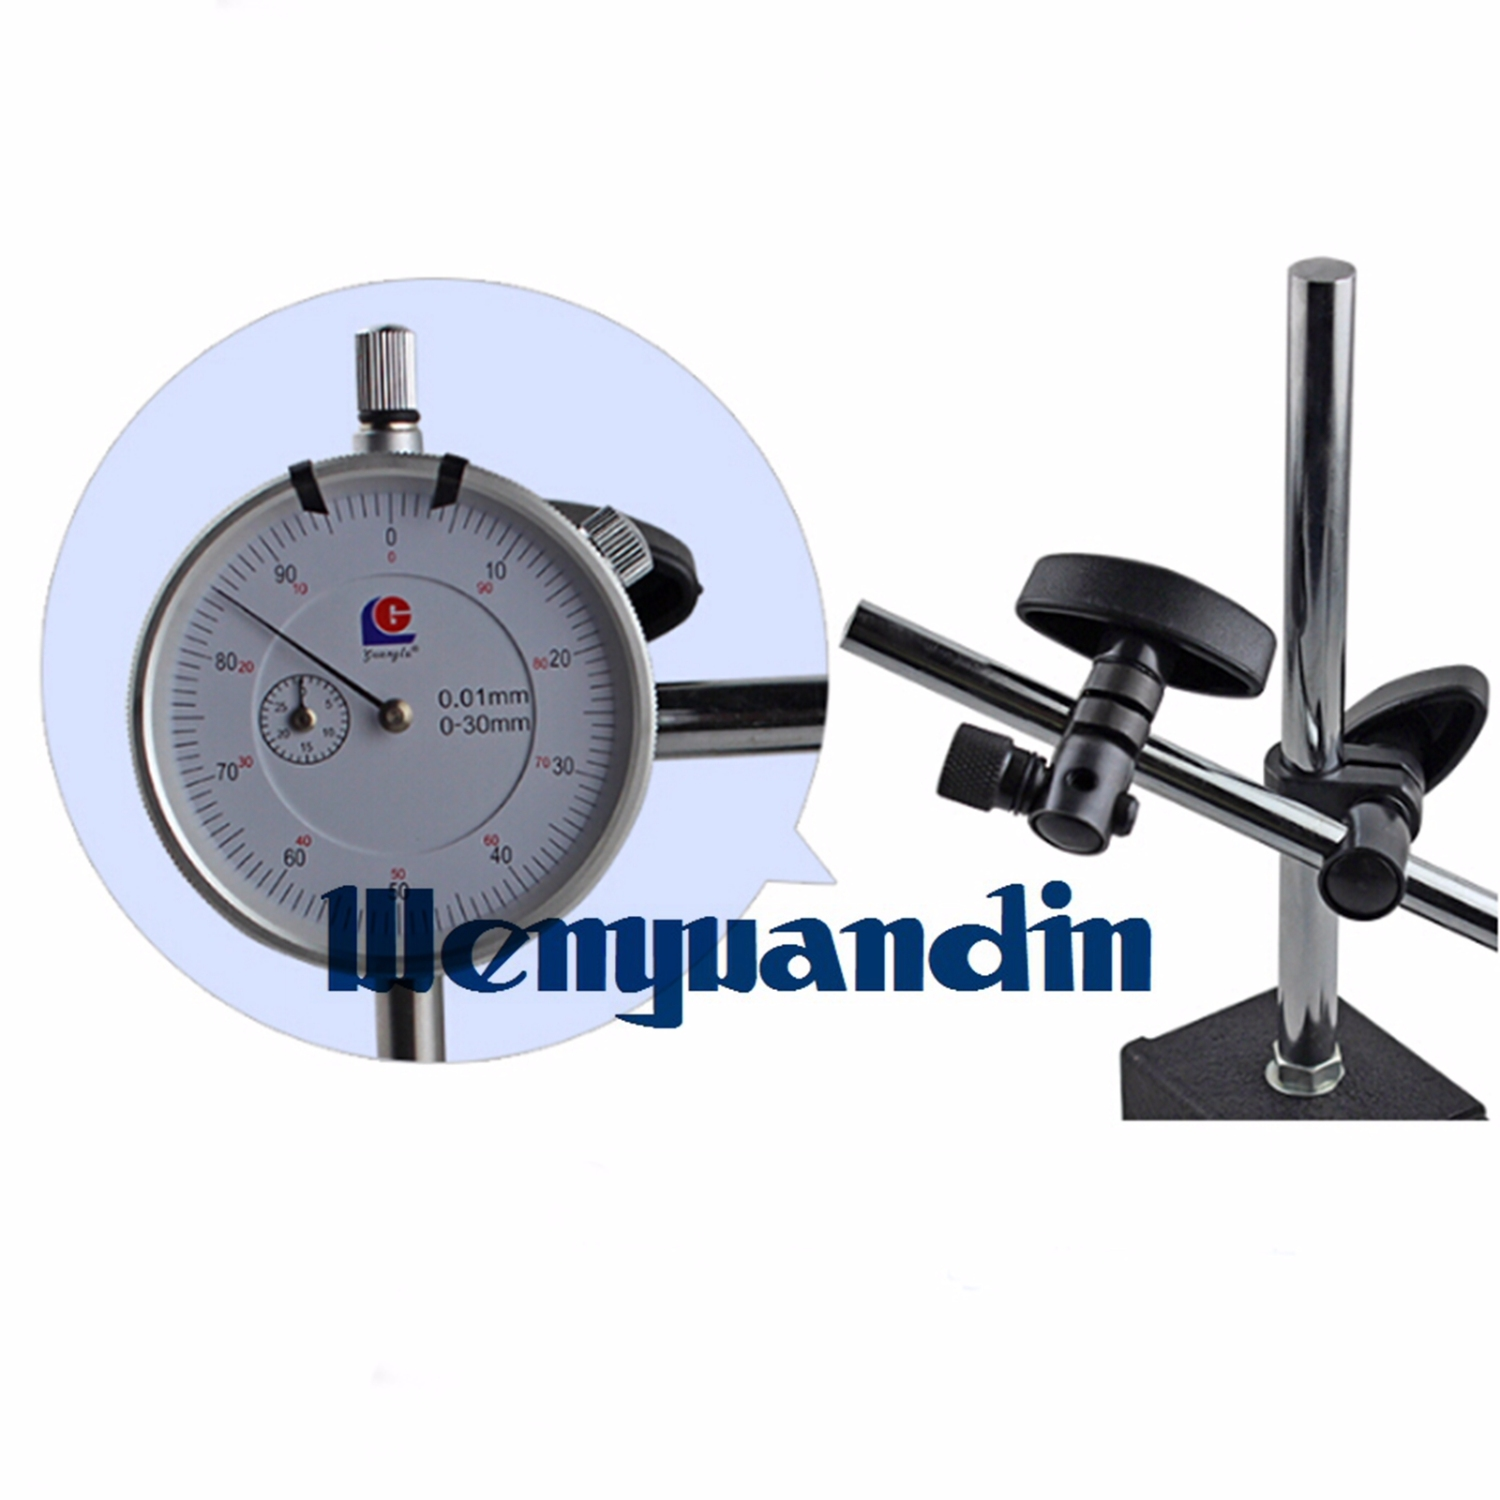 Three Axis Electronic Test Indicators : Magnetic base stand for digital dial test indicator